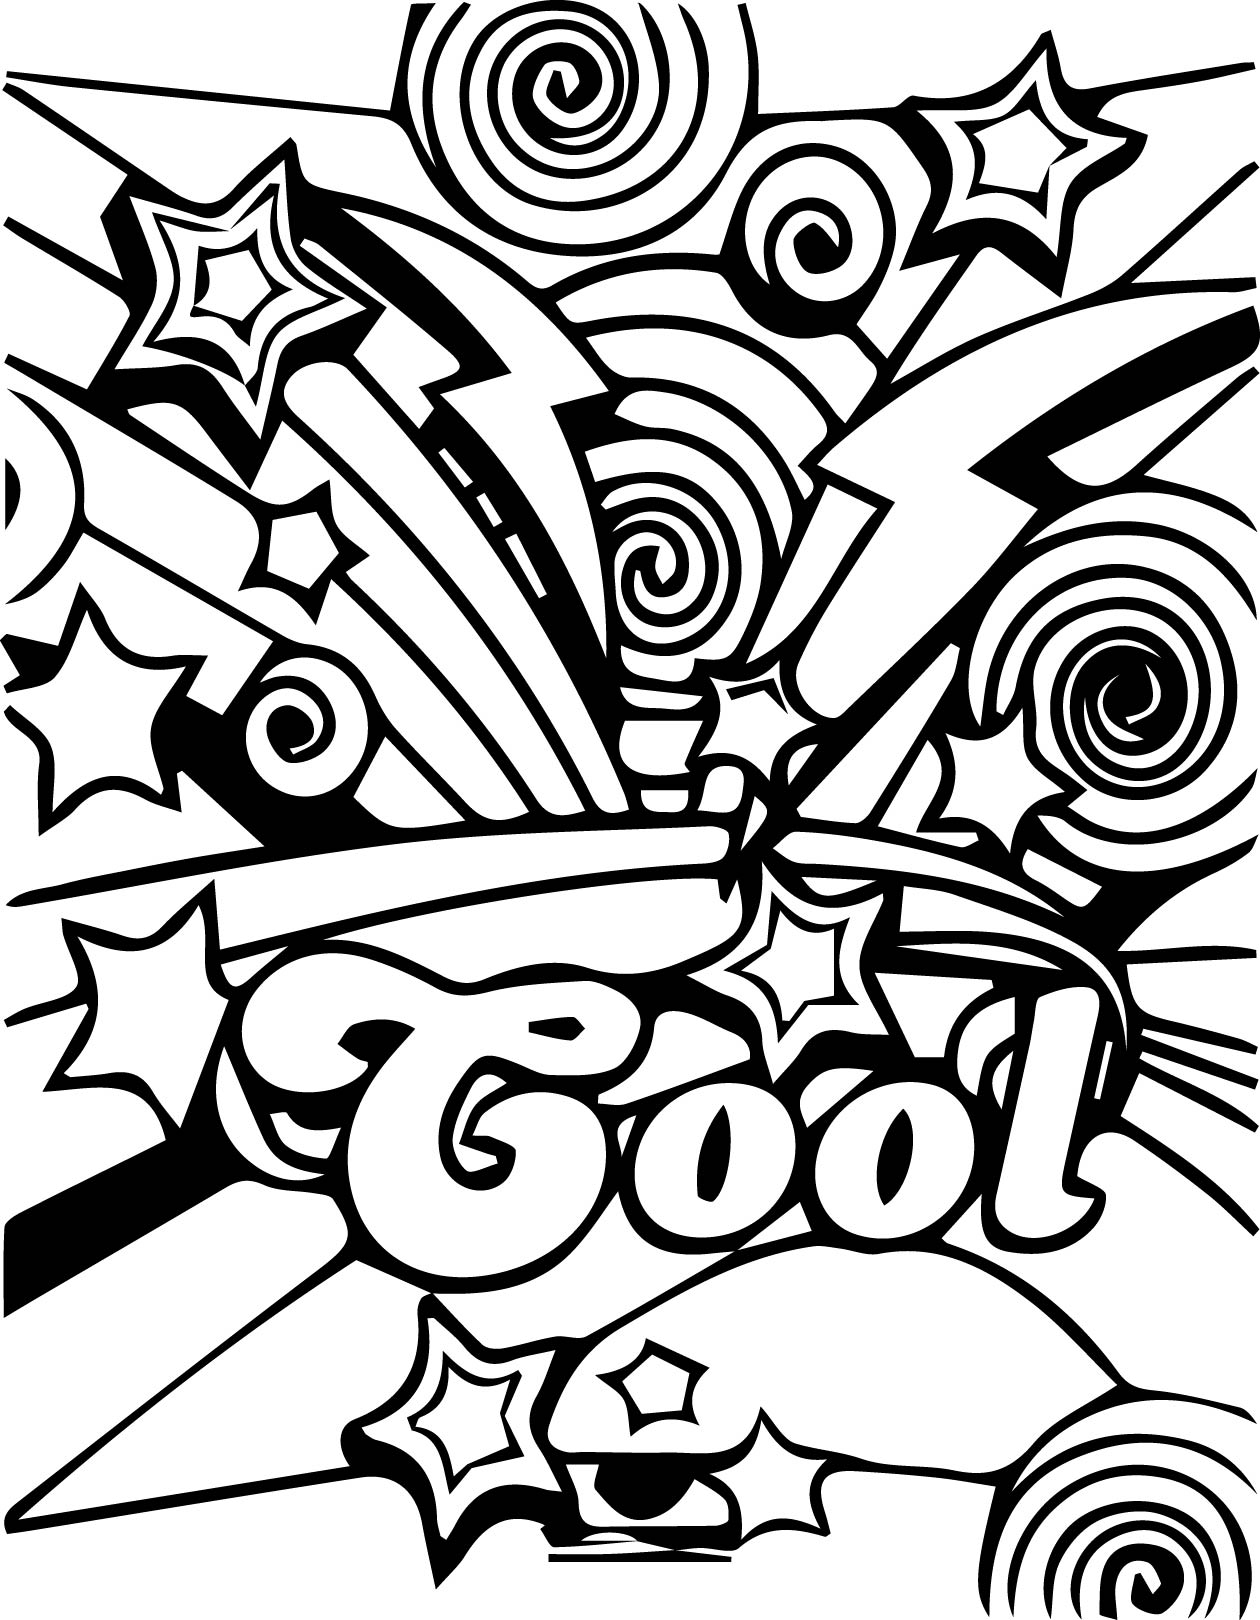 coloring pages for girls designs instant download coloring page cute owl zentangle by for pages coloring girls designs